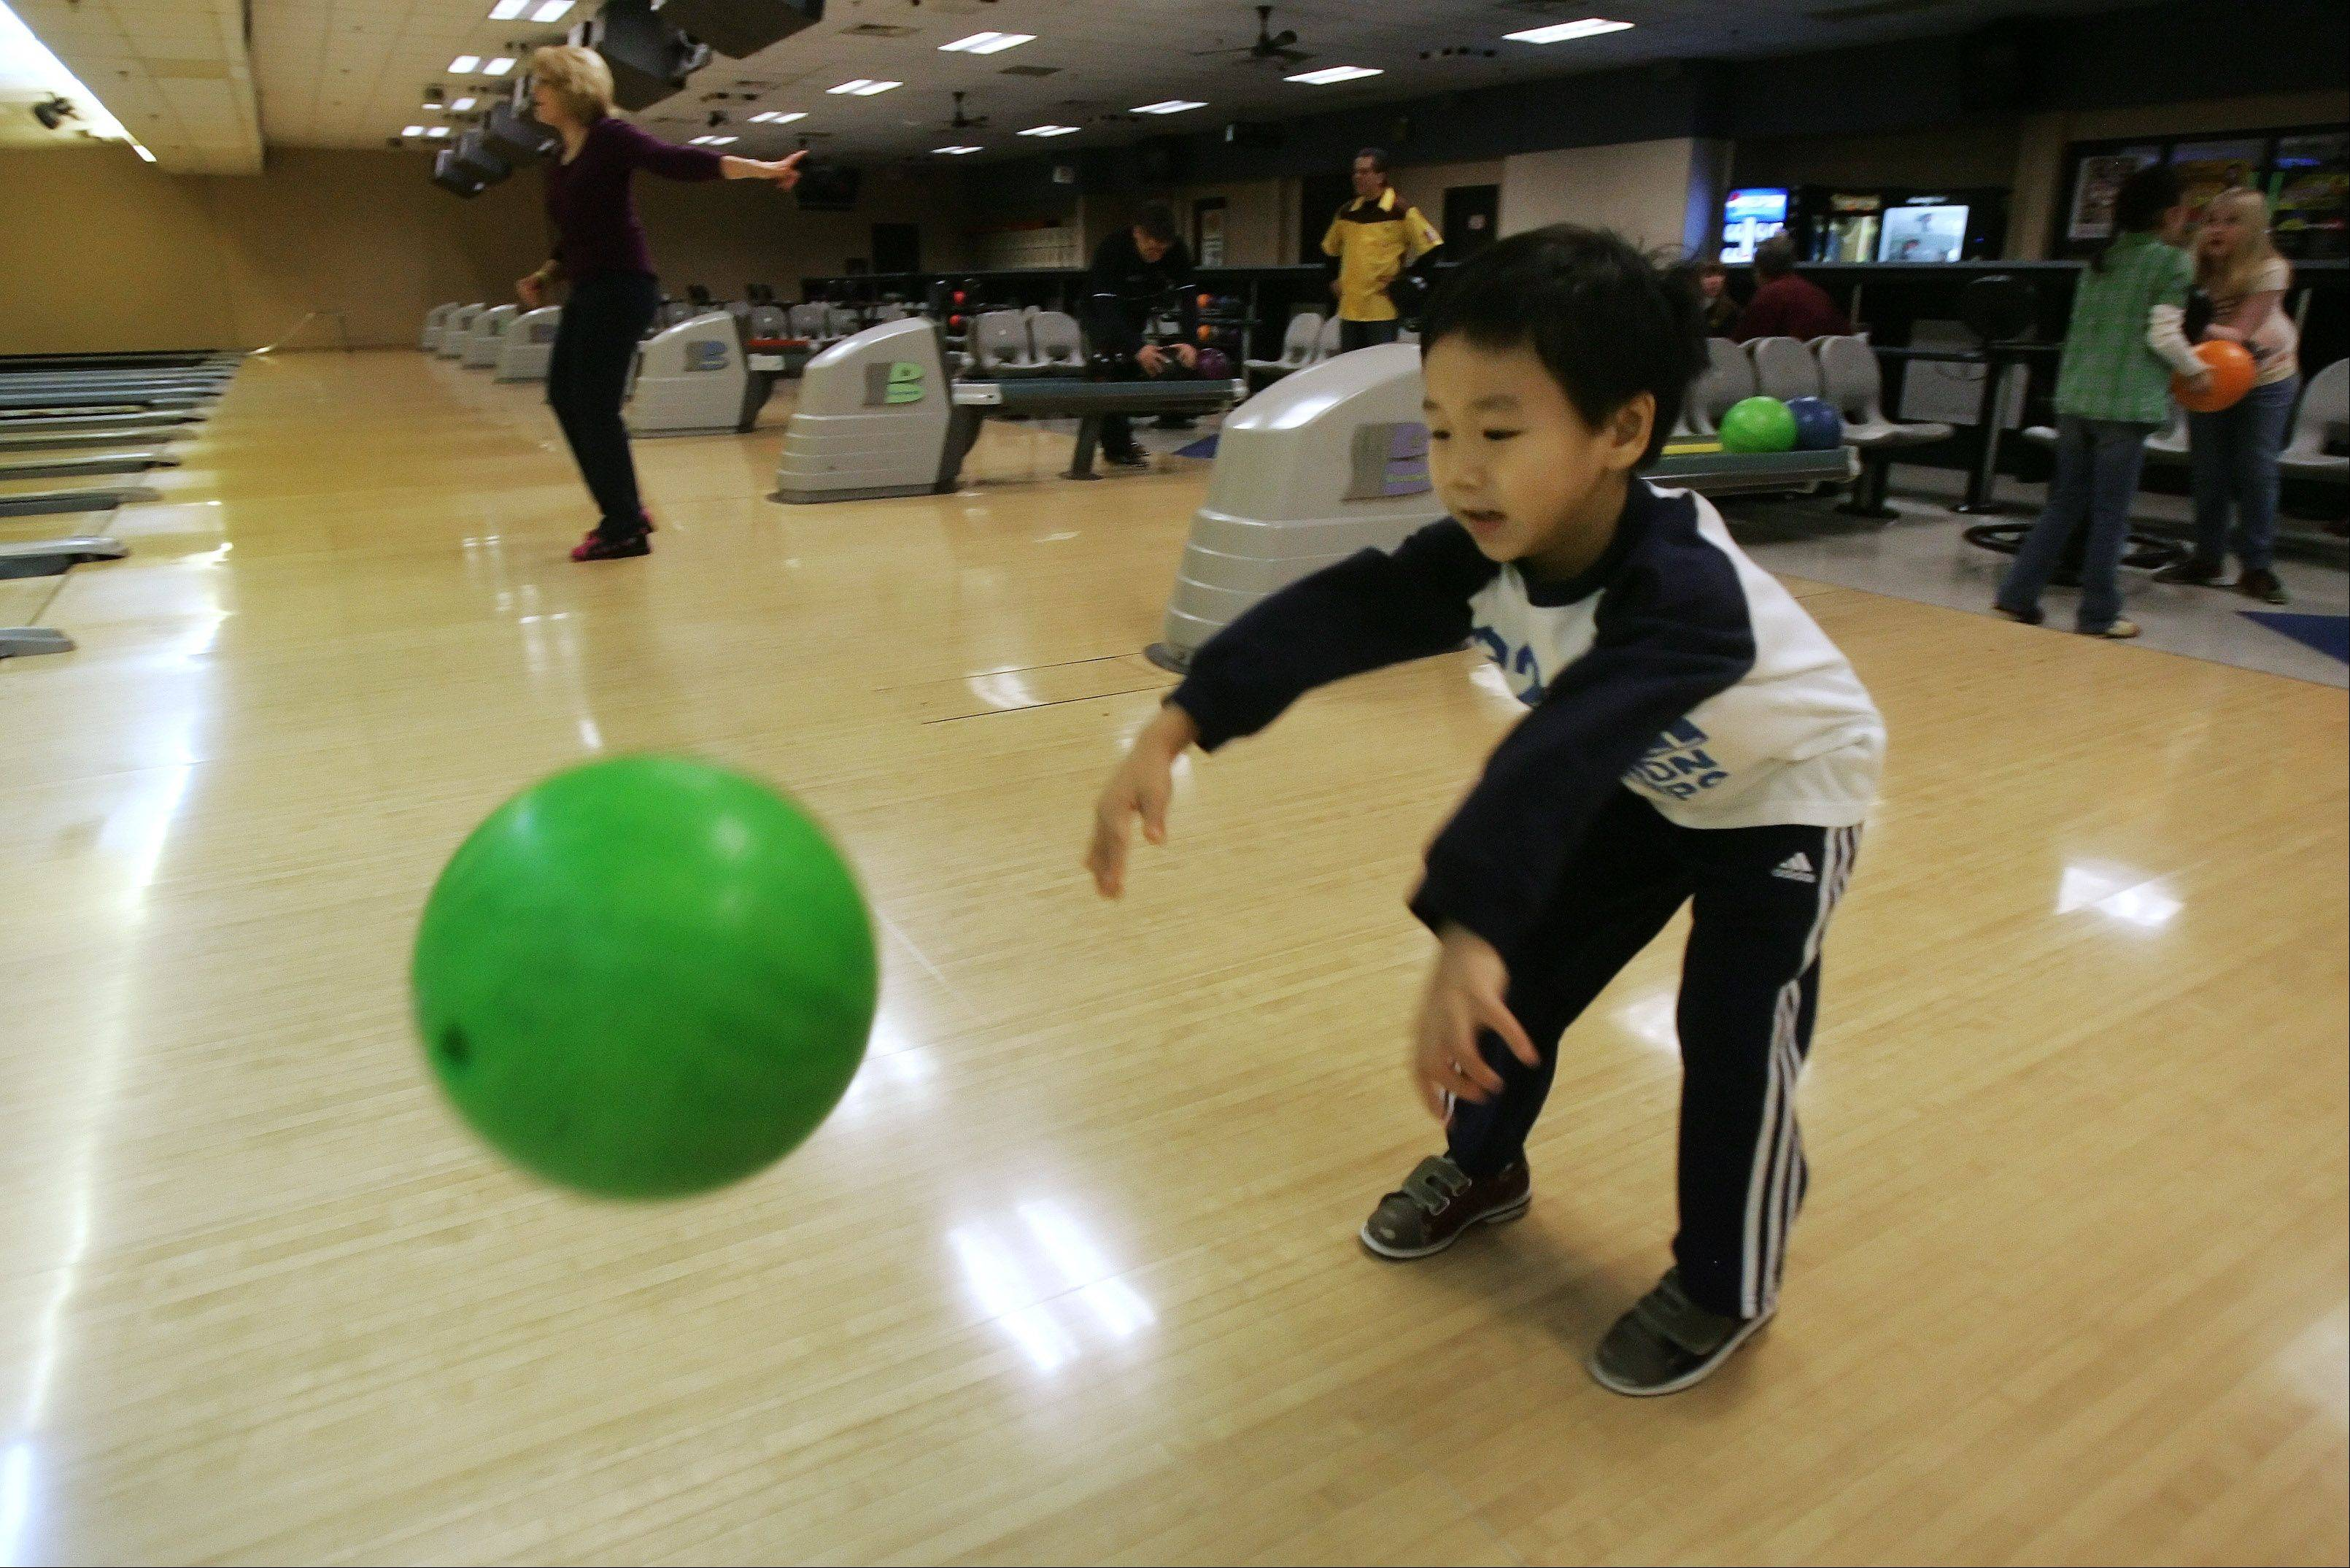 Five-year-old Harrison Zhang, of Brookfield, bowls during the Fourth Annual Football Sunday Benefit for the Little Angels Center for Exceptional Care at Arlington Lanes Bowl Sunday in Arlington Heights. The fundraiser was hosted by the Schaumburg-Hoffman Lions Club and featured unlimited bowling, a buffet and a silent auction.